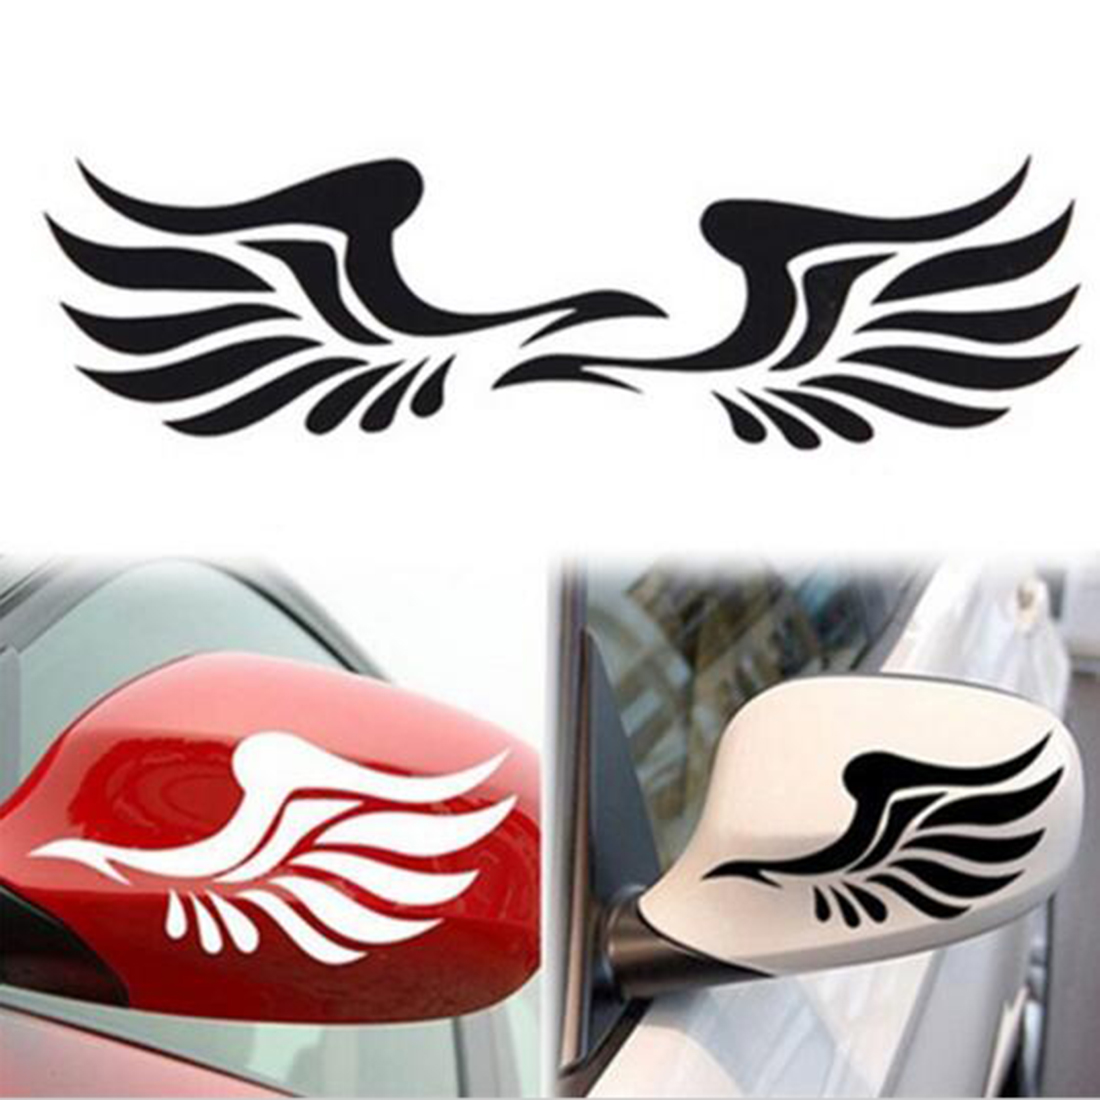 Dewtreetali 2pcs new design personality fire wings side mirror car styling stickers decorative stickers free shipping in interior mouldings from automobiles